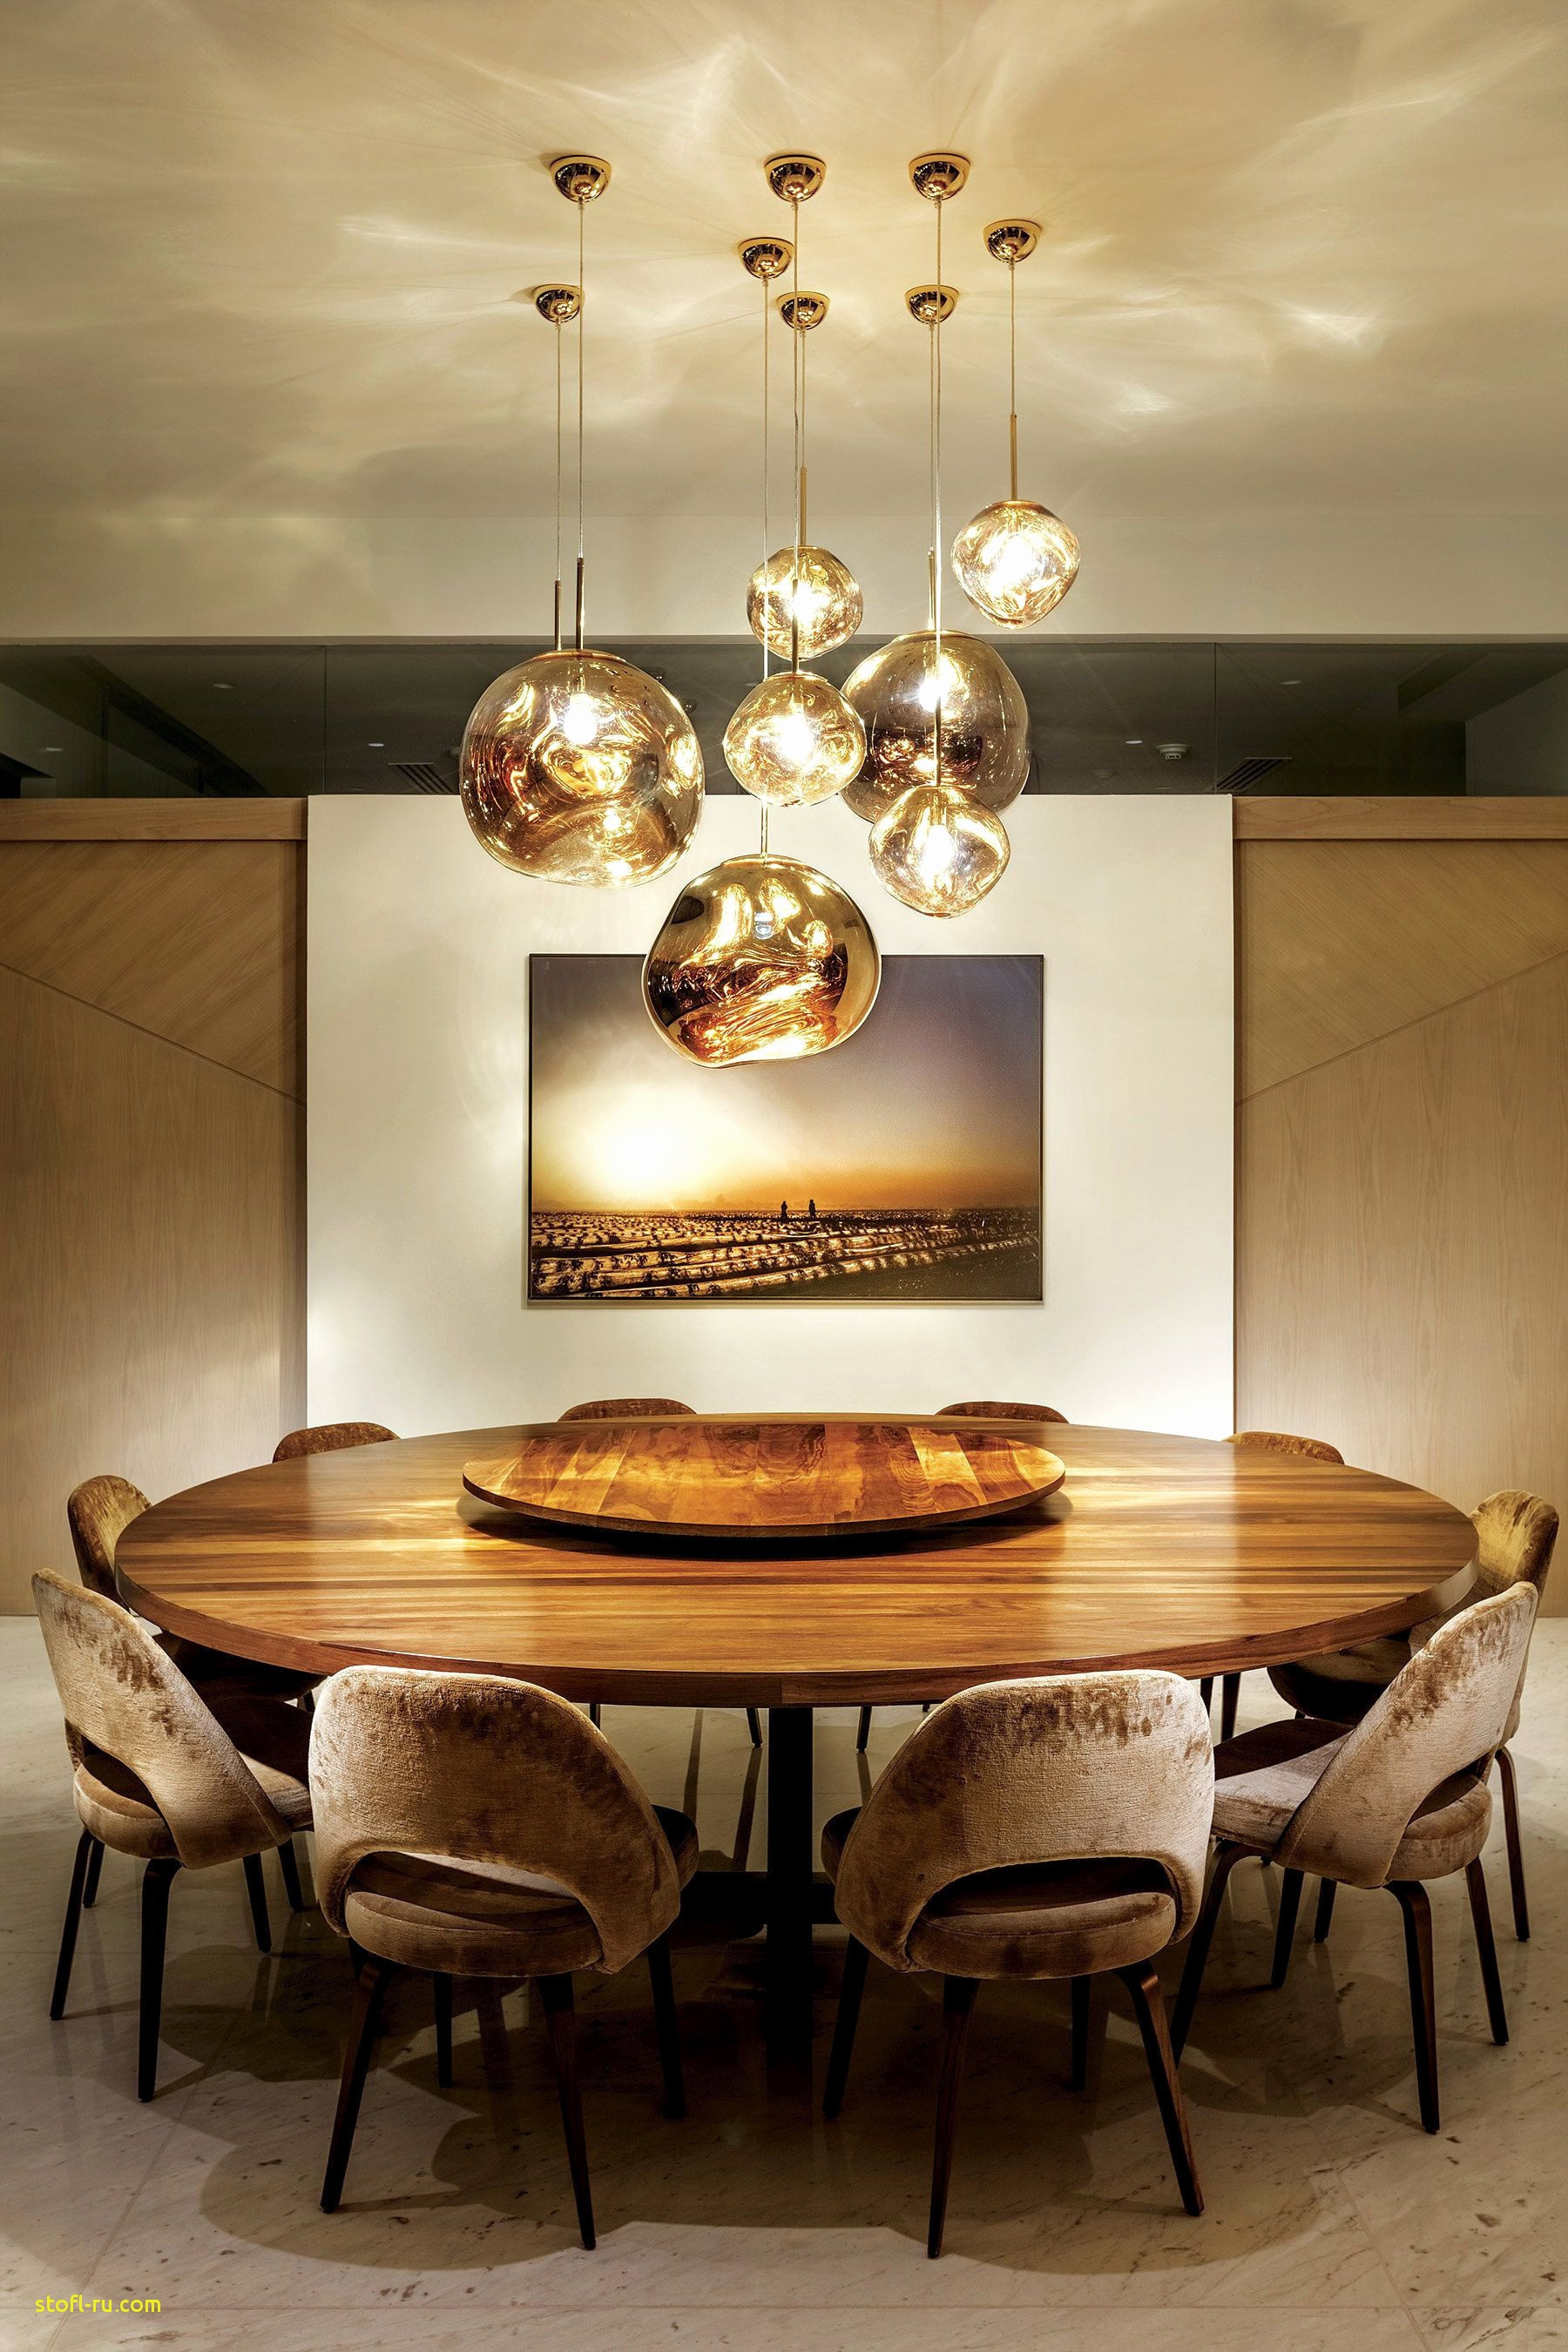 houzz hardwood flooring ideas of houzz home design modern style house design ideas with outdoor room design ideas fresh houzz lighting fixtures lighting 0d a· chandeliers for dining room